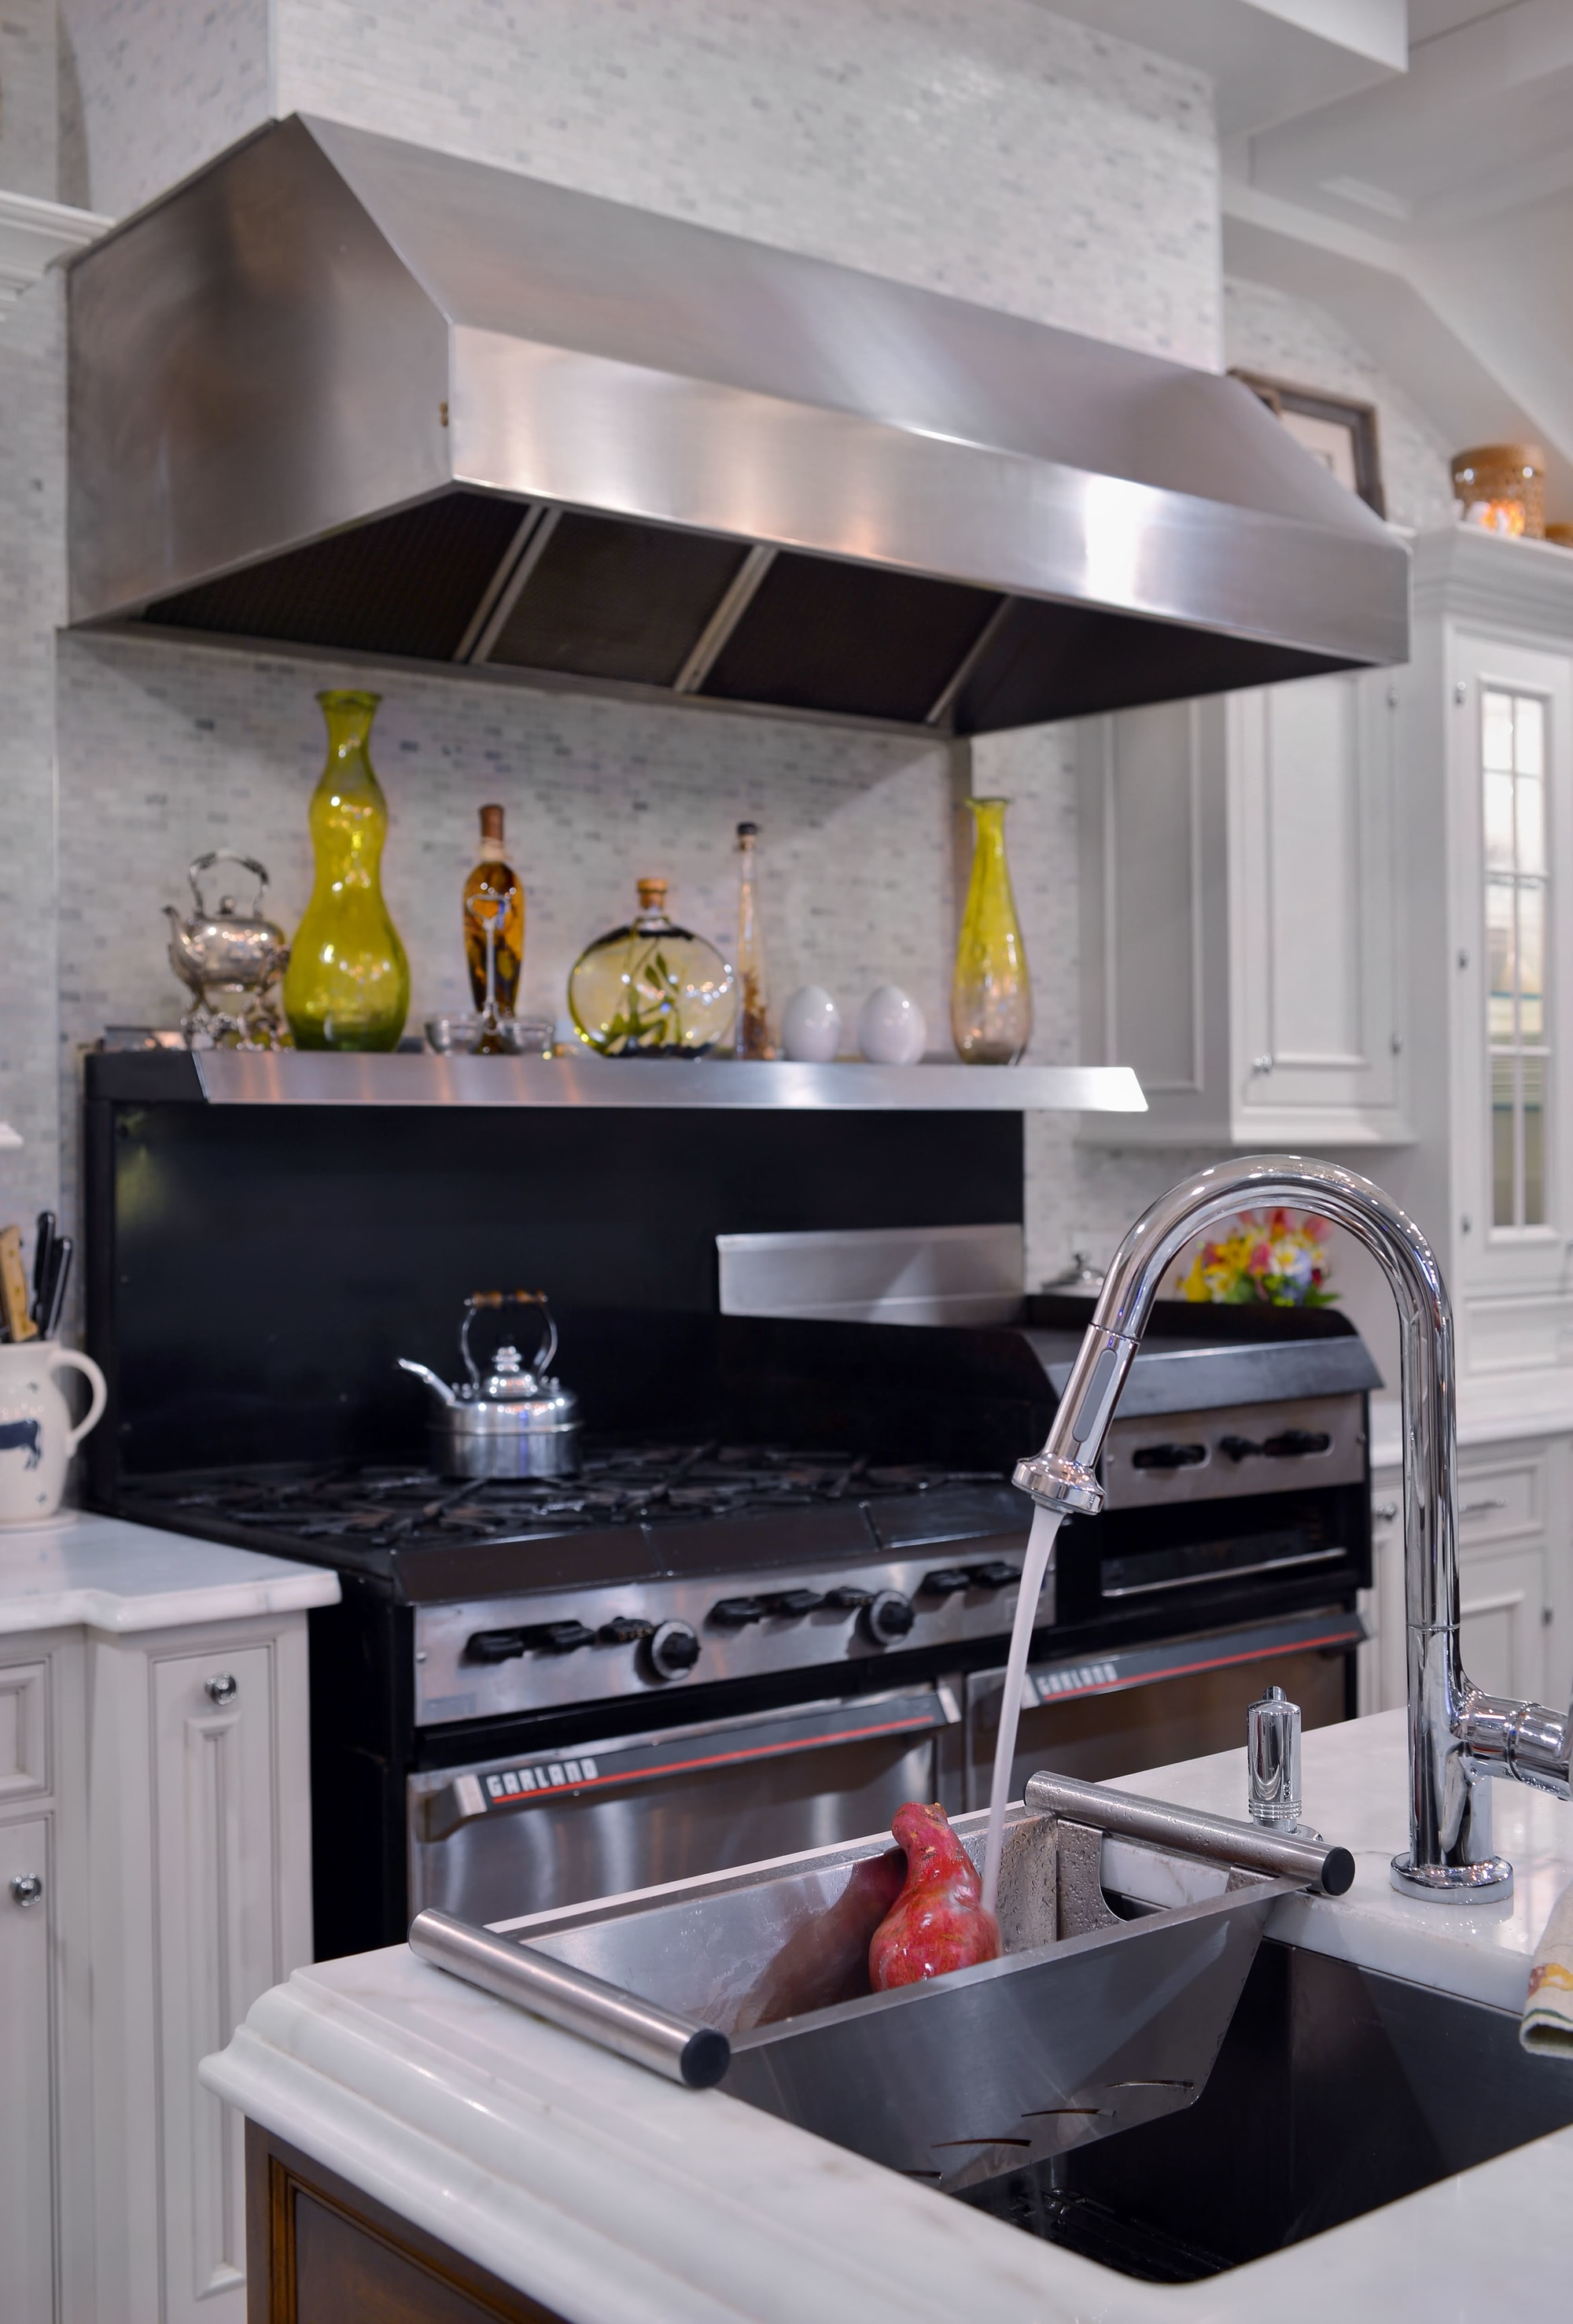 Traditional style kitchen with steel faucet